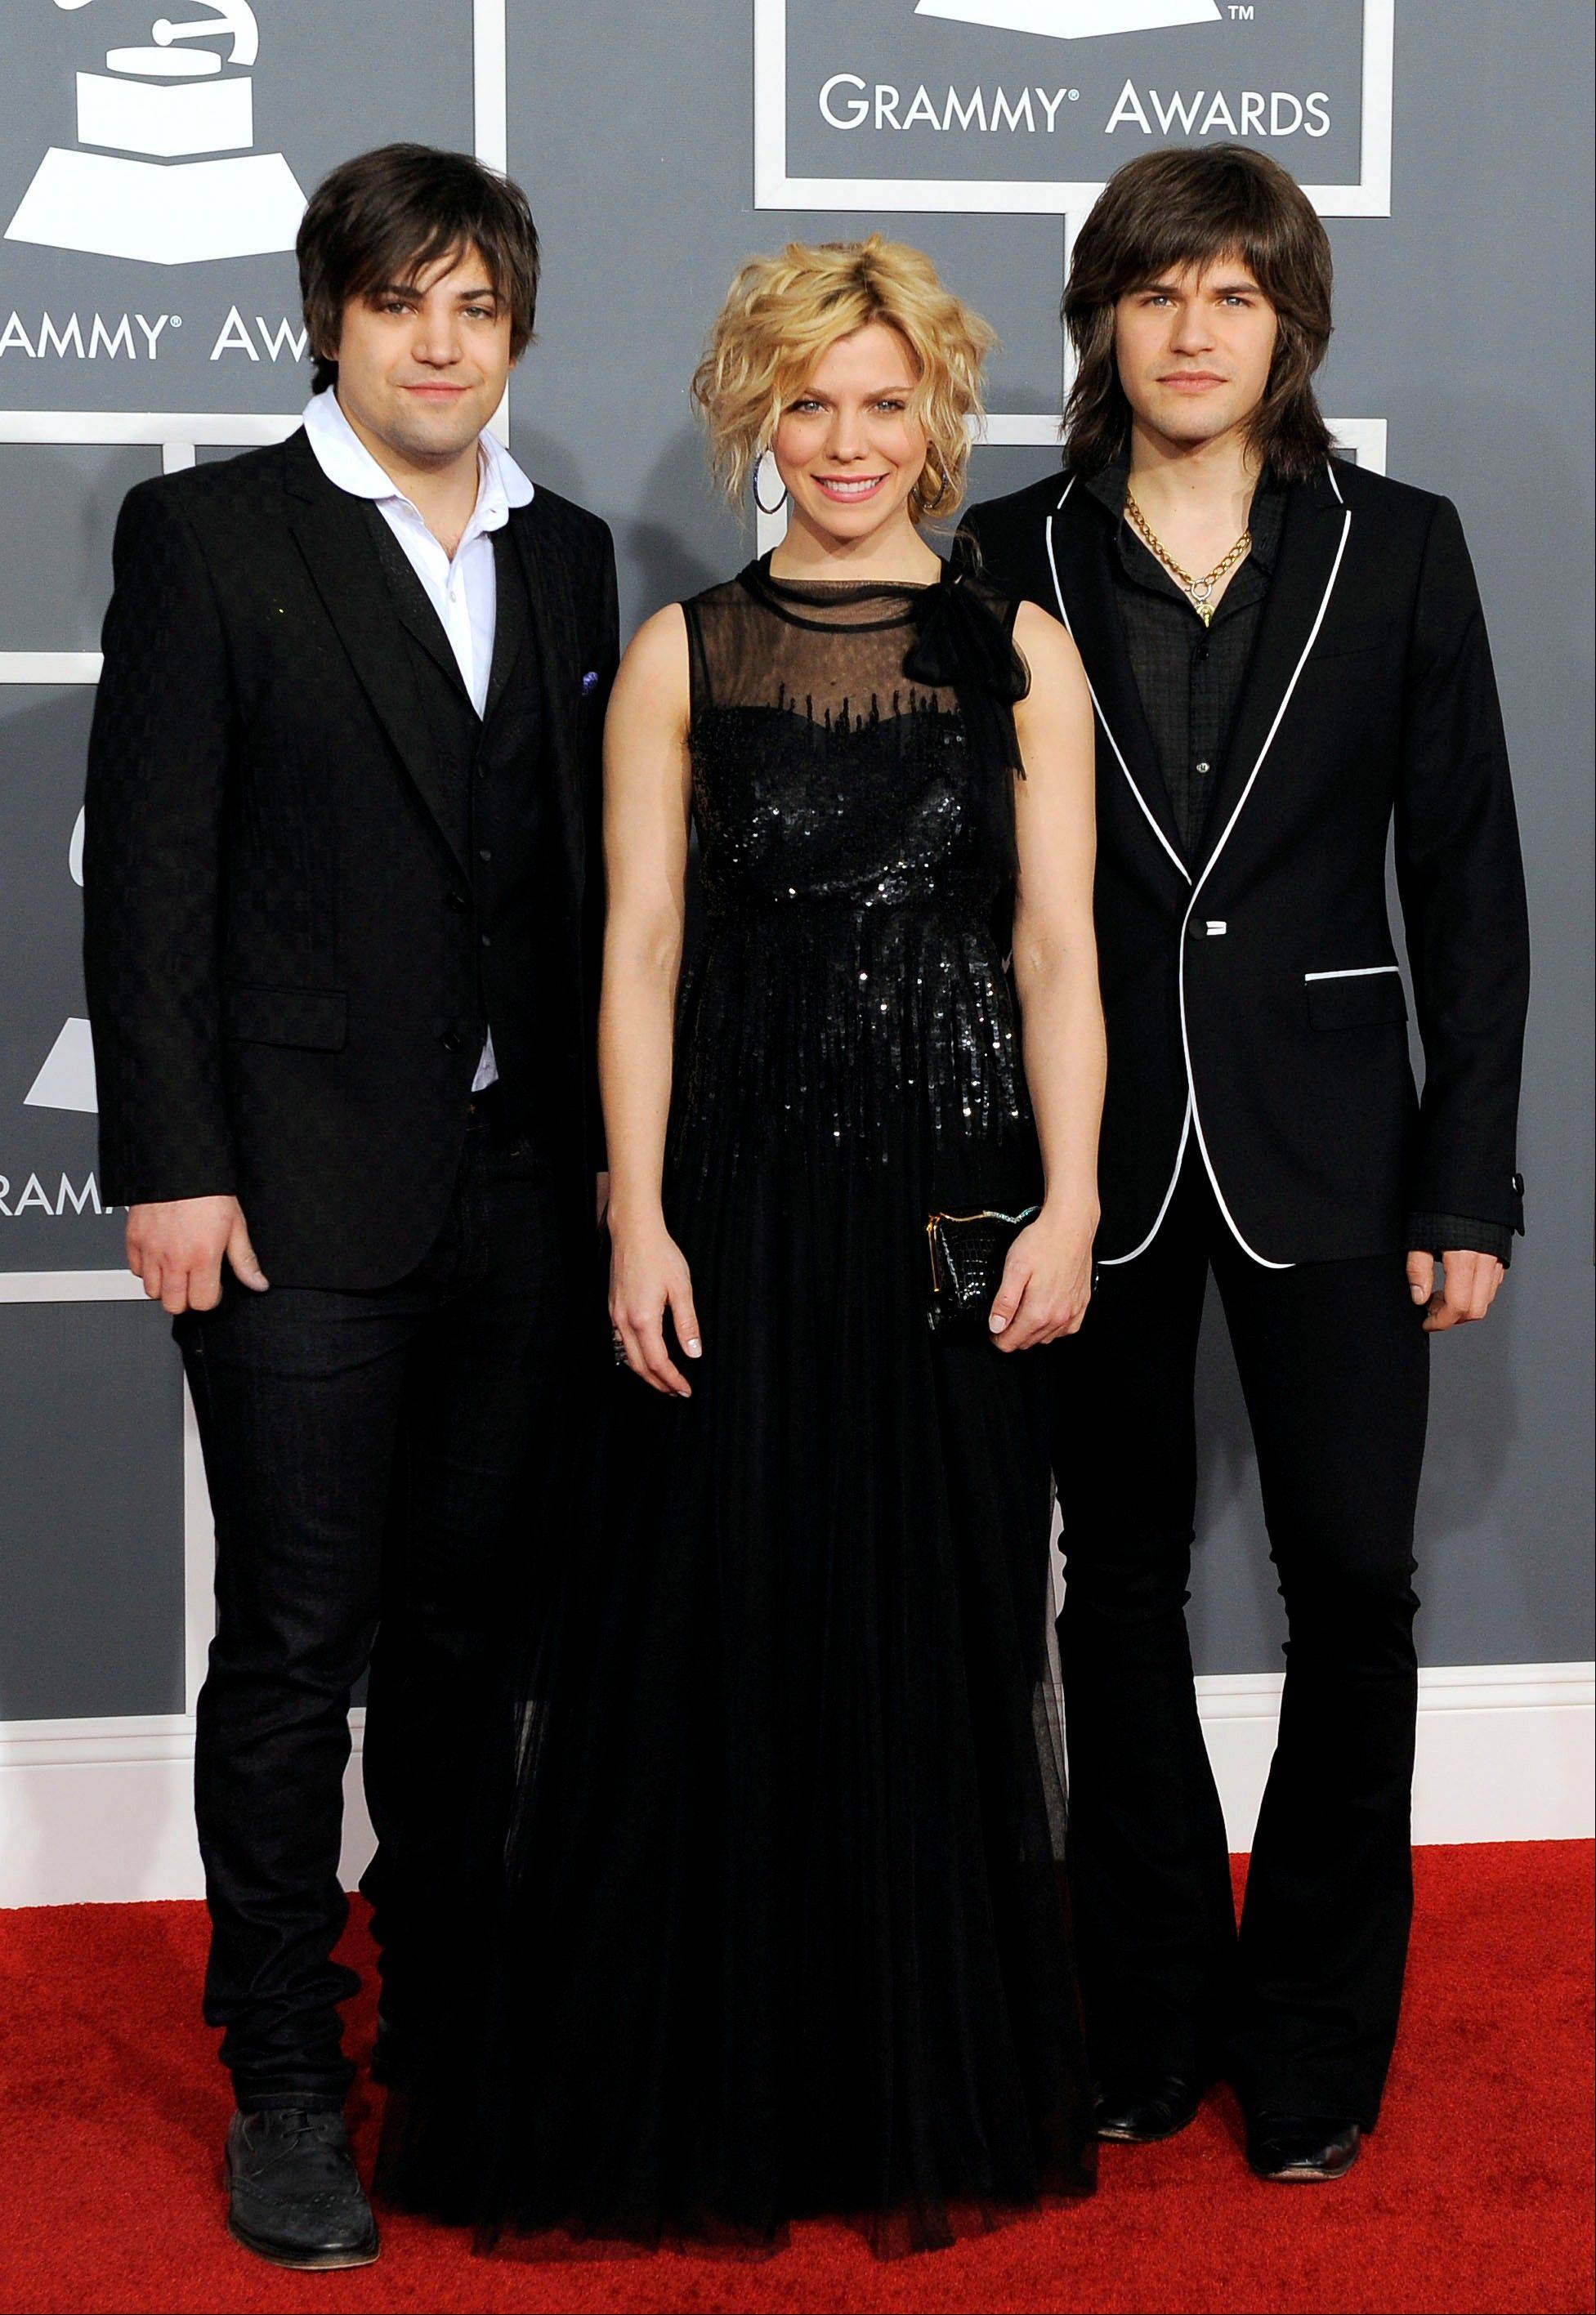 Neil, left, Kimberly and Reid Perry of The Band Perry arrive Sunday at the 54th annual Grammy Awards in Los Angeles.